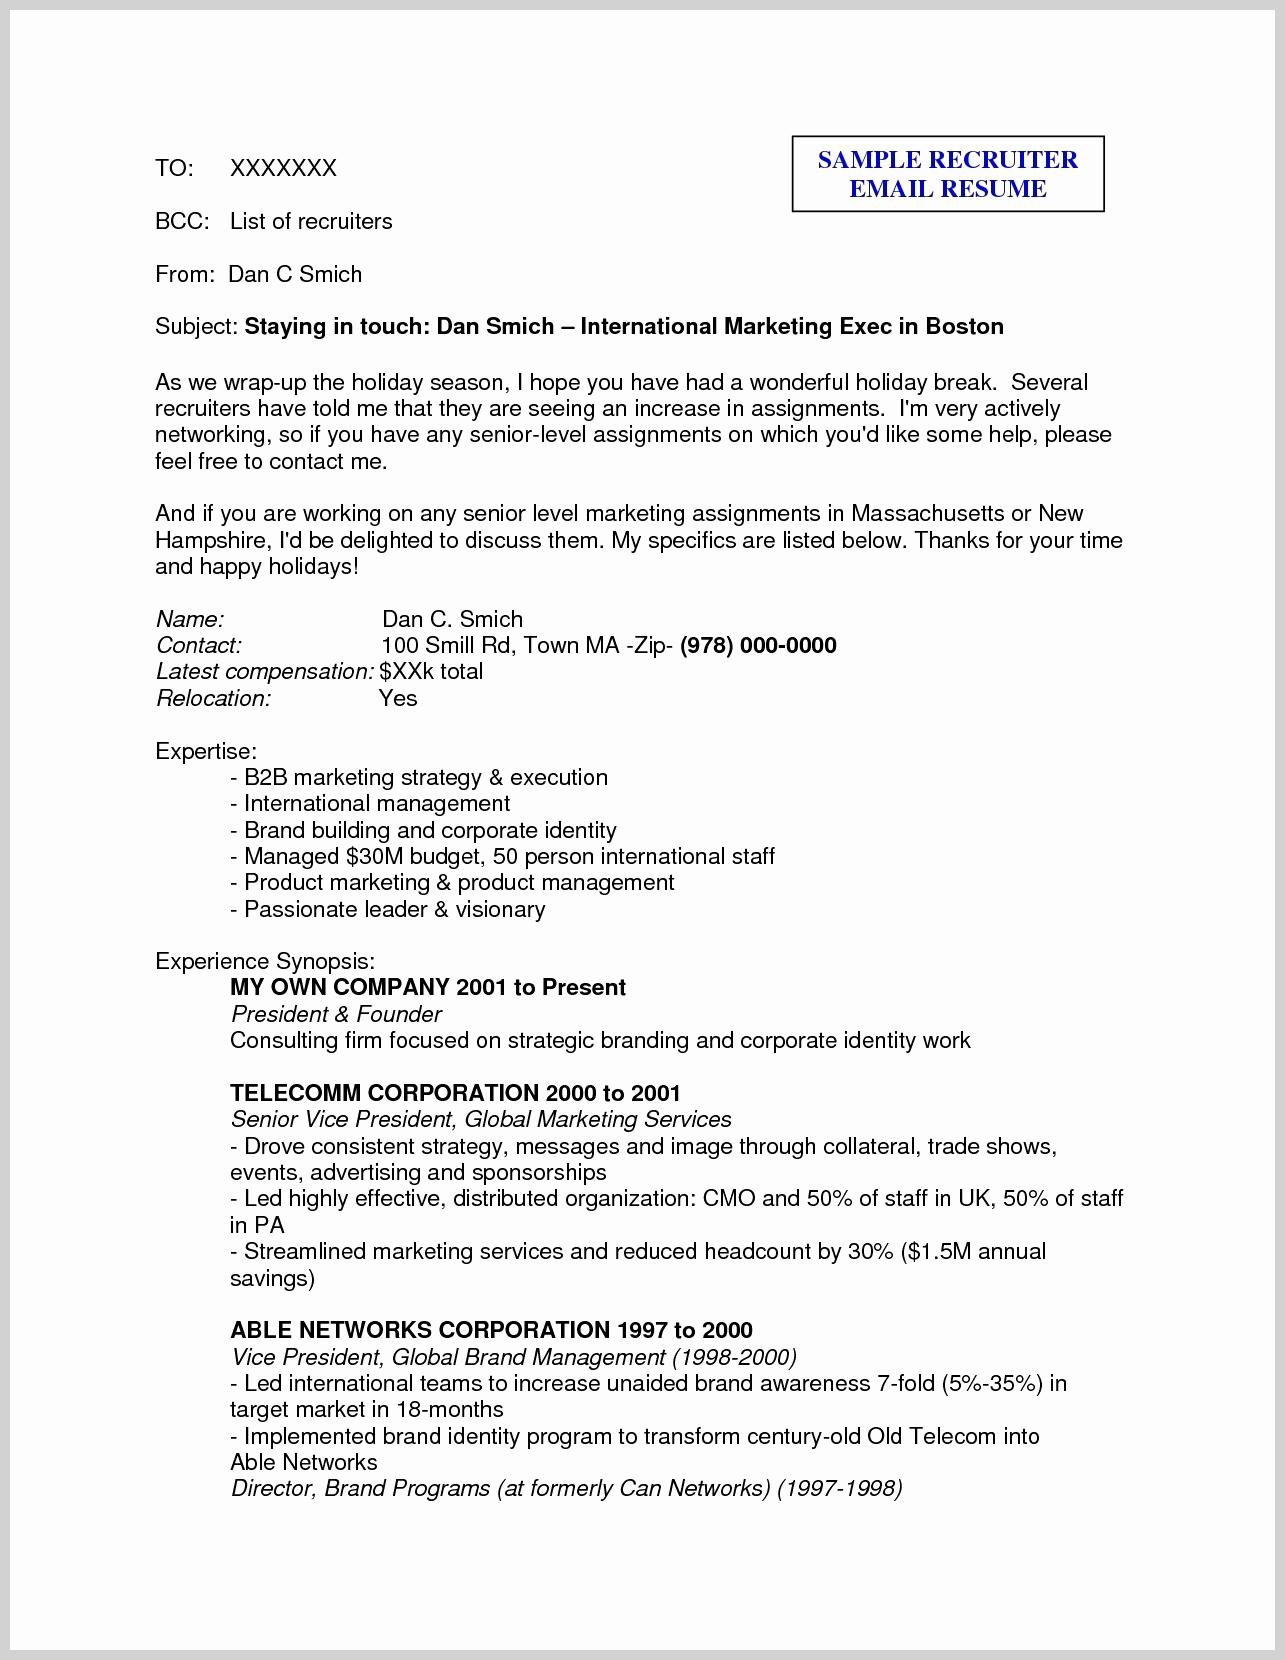 Free Holiday Letter Template - 36 Unique Cover Letter Relocation Resume Templates Resume Templates